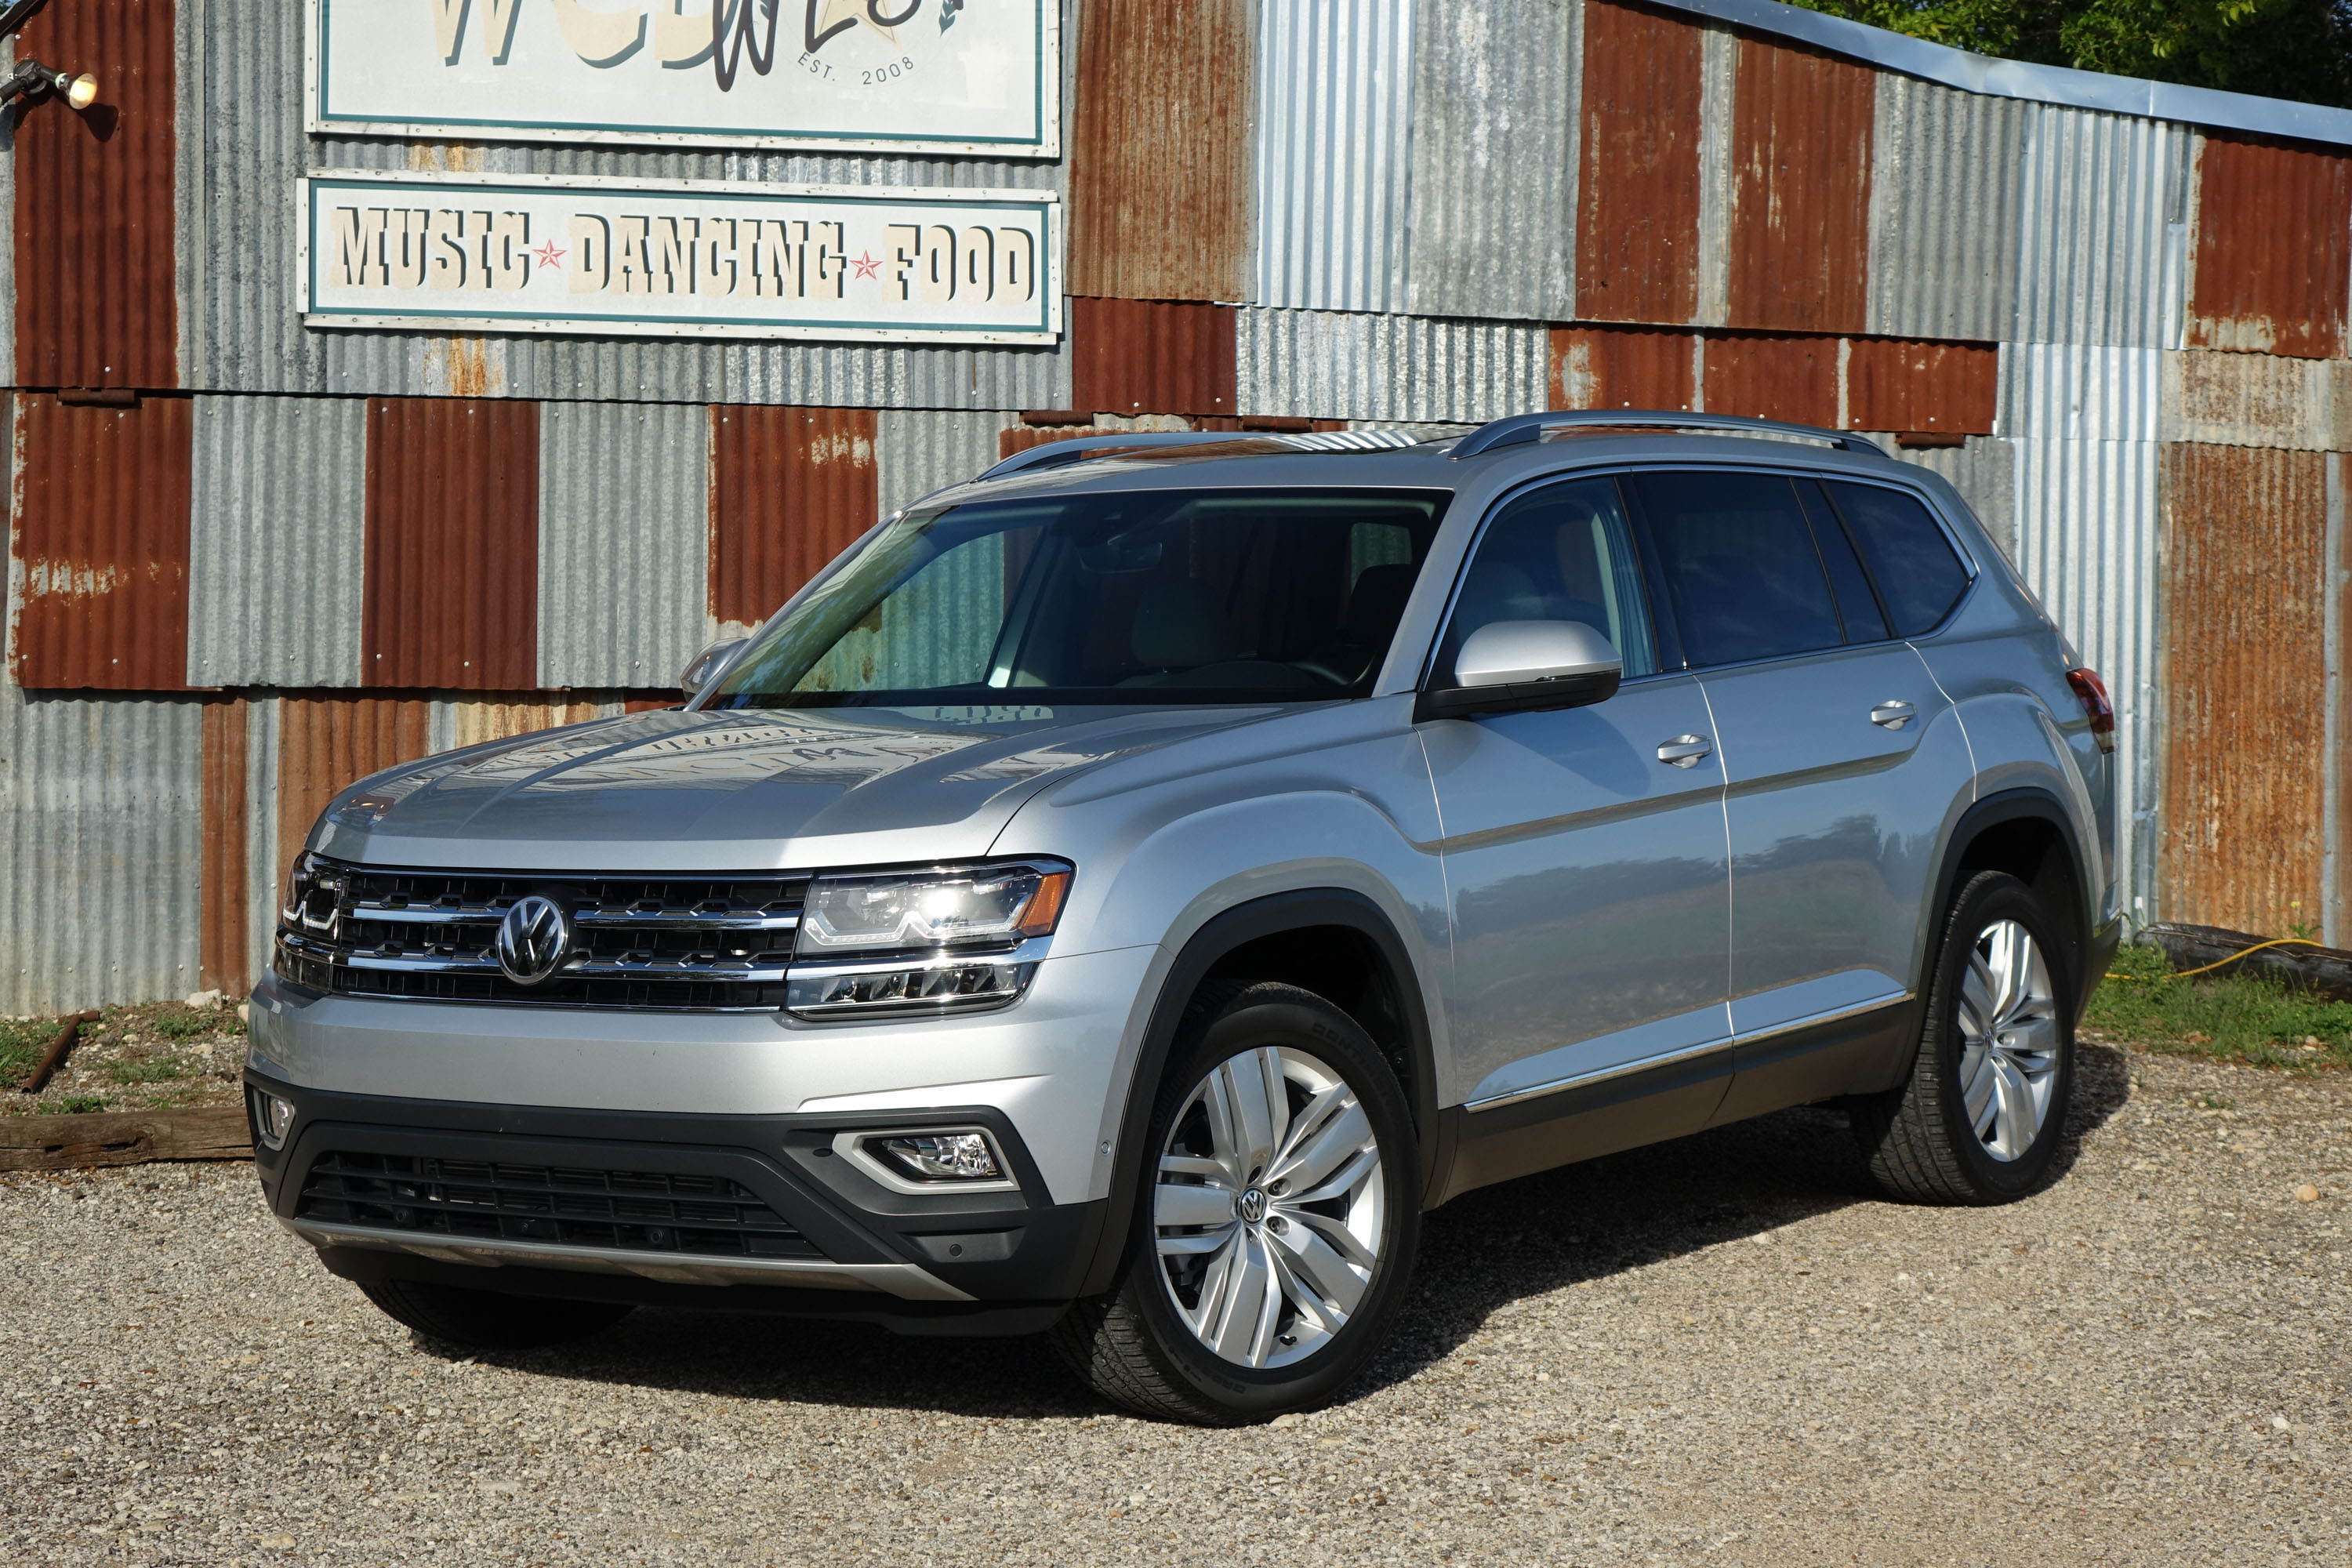 Ford Fort Worth >> 2018 Volkswagen Atlas first drive: Super-sized